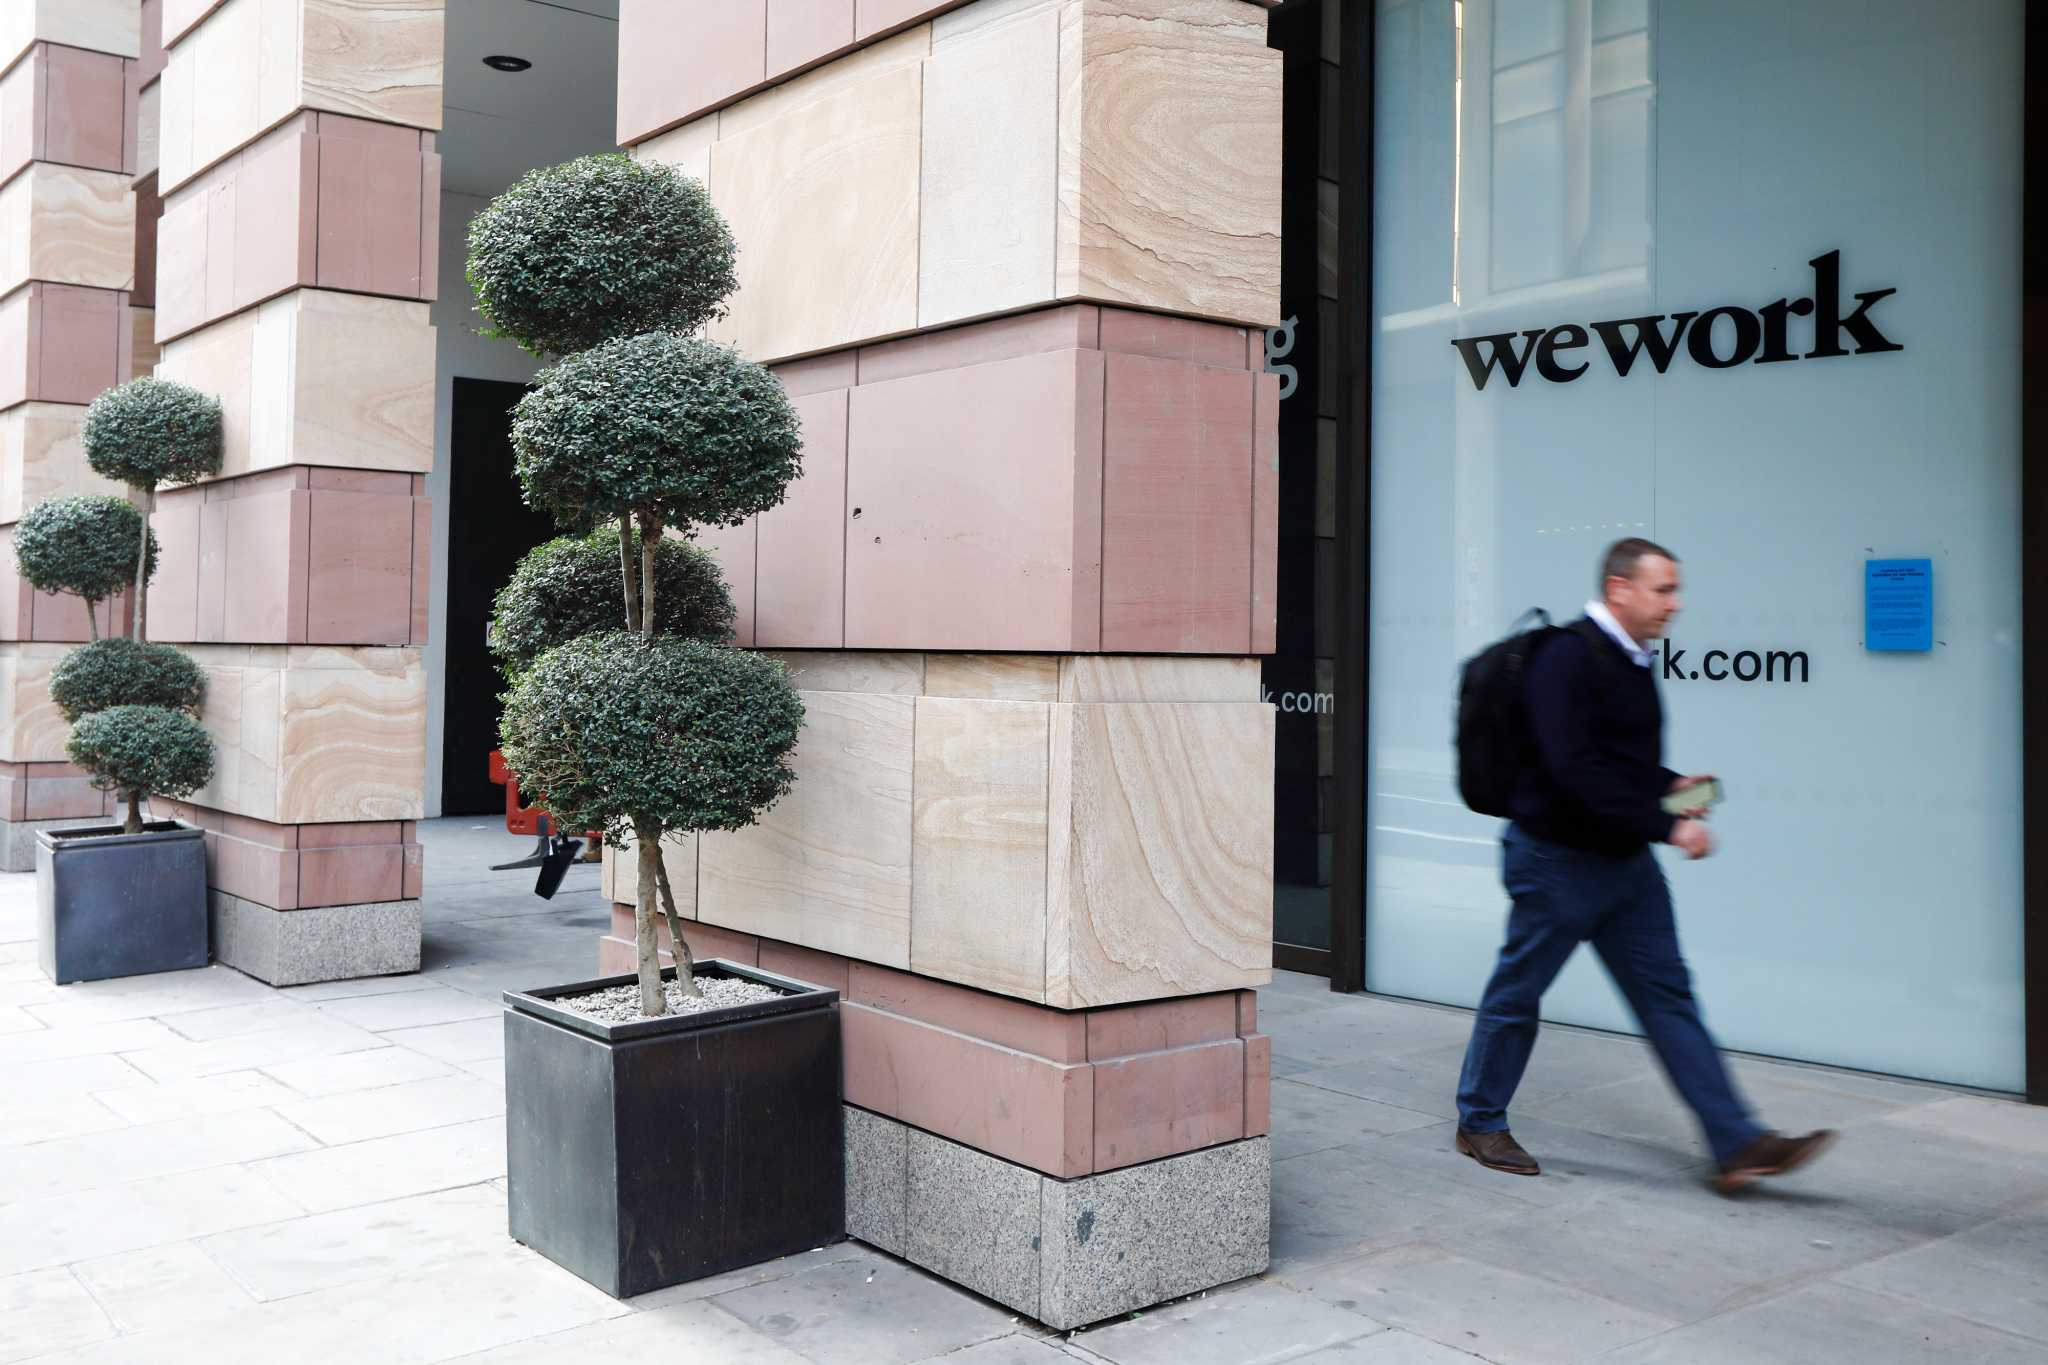 WeWork is facing an uphill climb from lenders in Europe - SFGate